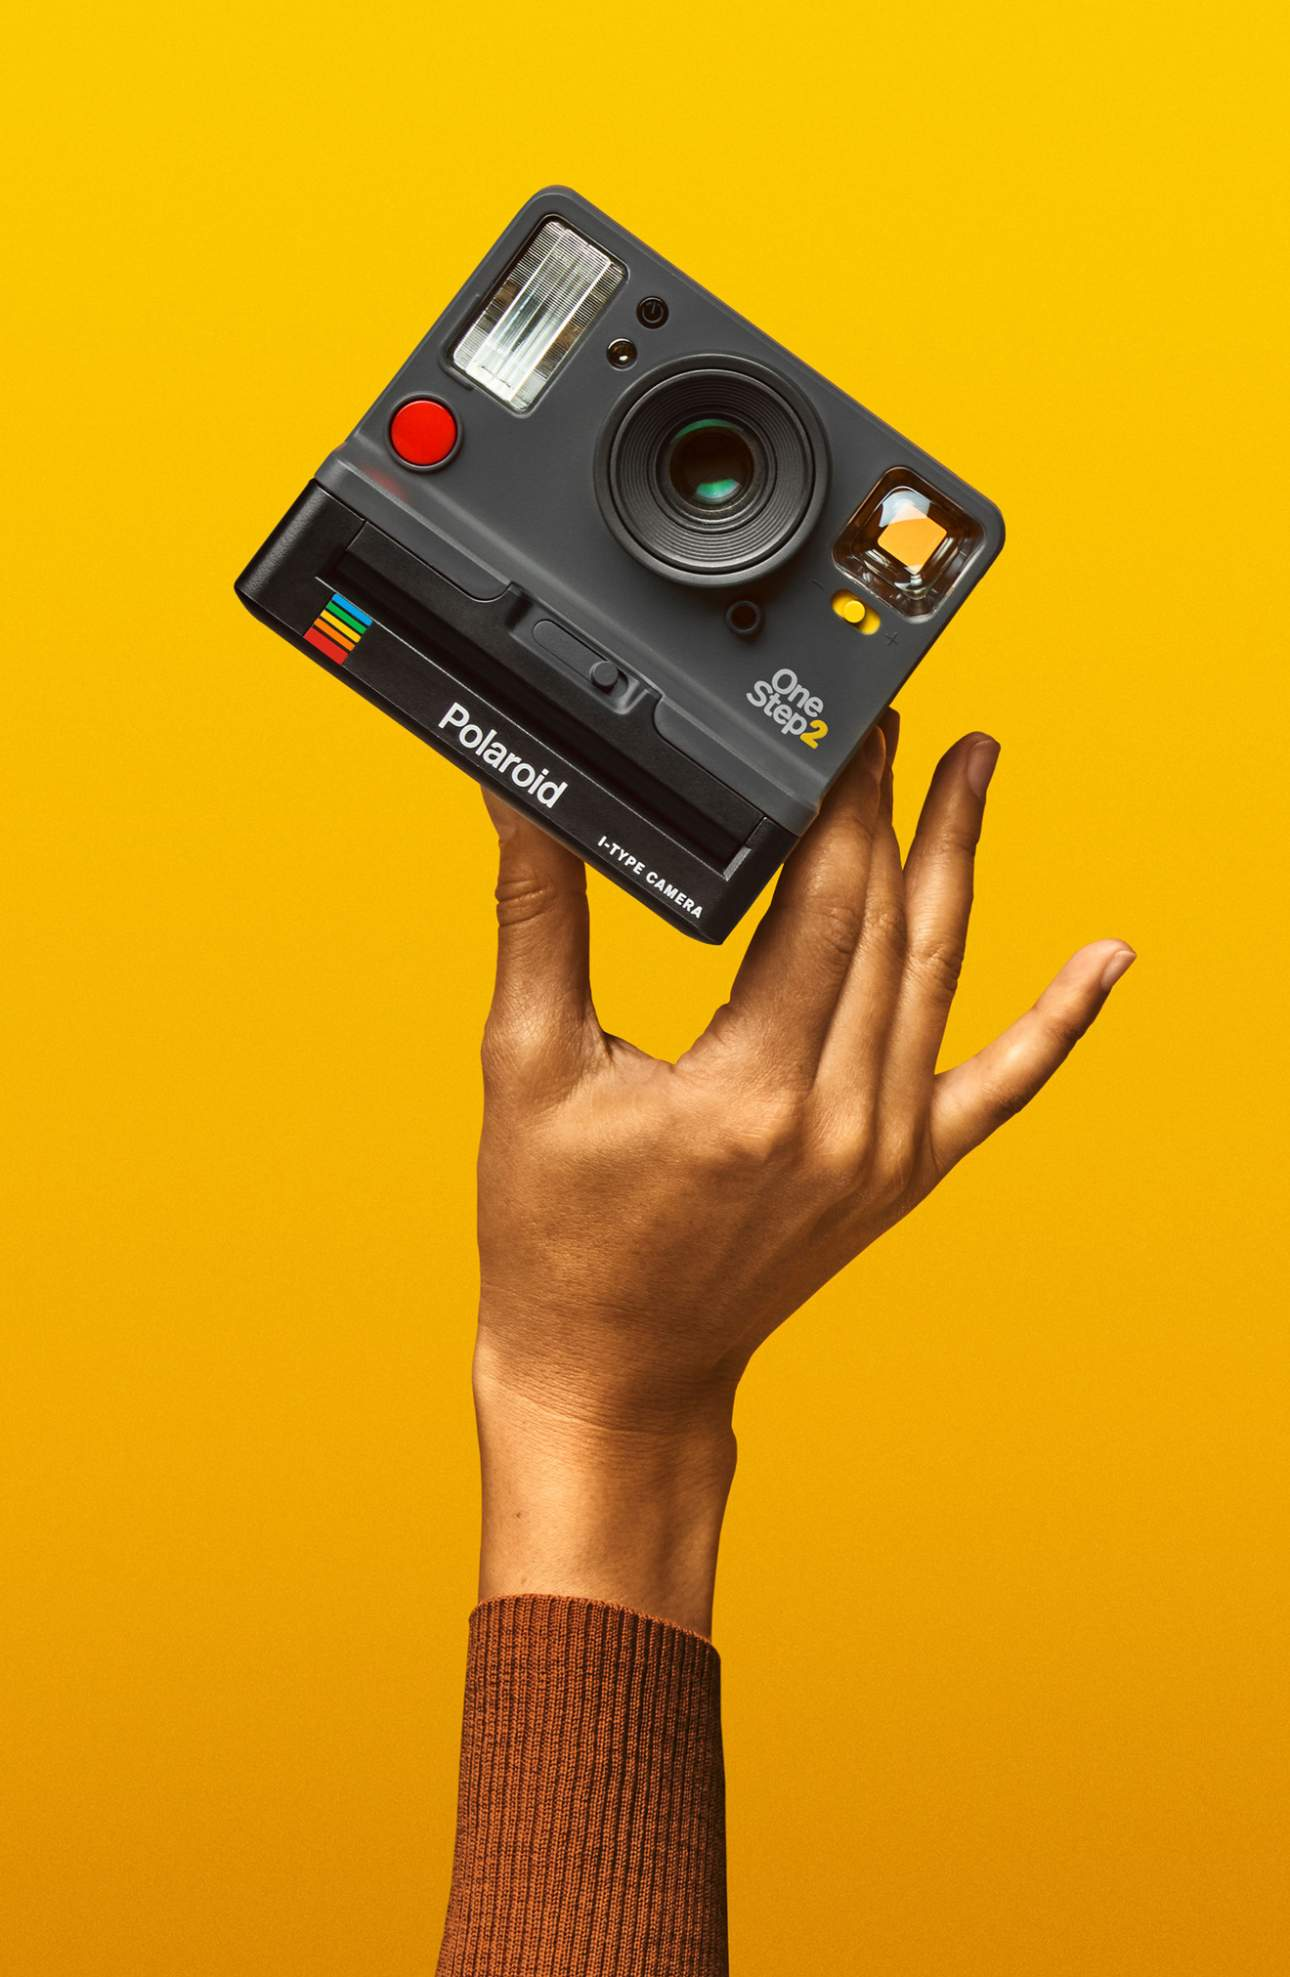 <p>Impossible Project Polaroid OneStep 2 Analog Instant Camera - $99.99. This is such a fun gift for the budding artist in your life or basically any teenage girl who wants to take a new kind of selfie. It's classic design meets contemporary style in this updated version of Polaroid's original OneStep instant camera. The price: $99.99. Purchase at Nordstrom or Amazon. (Image: Nordstrom){&nbsp;}<br></p><p></p>